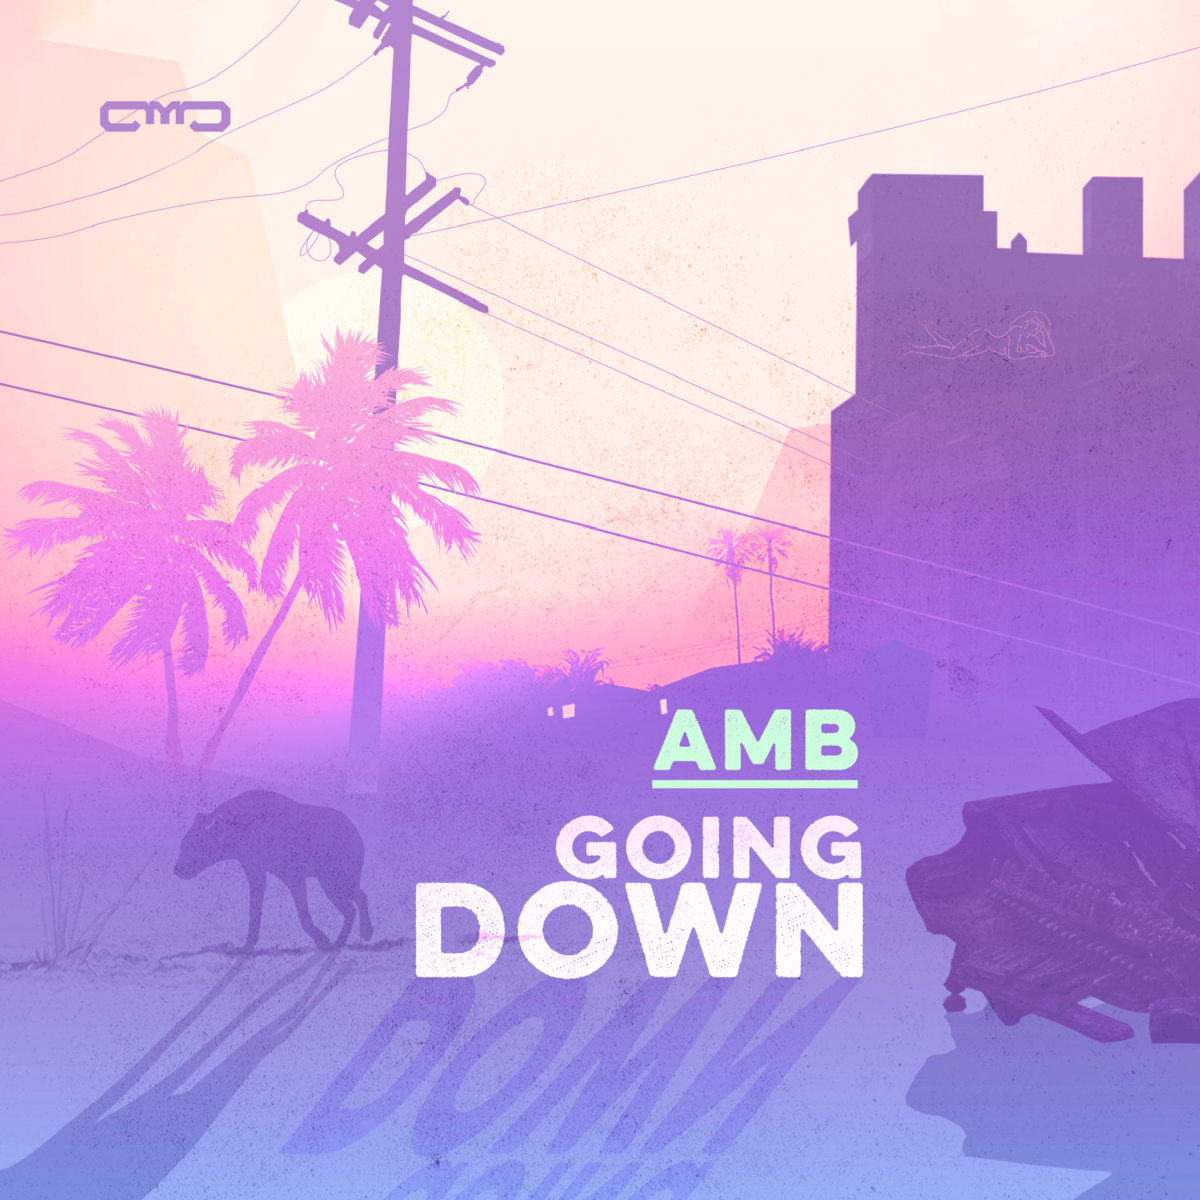 AMB - Going Down @ 'Going Down' album (ambient, dark)